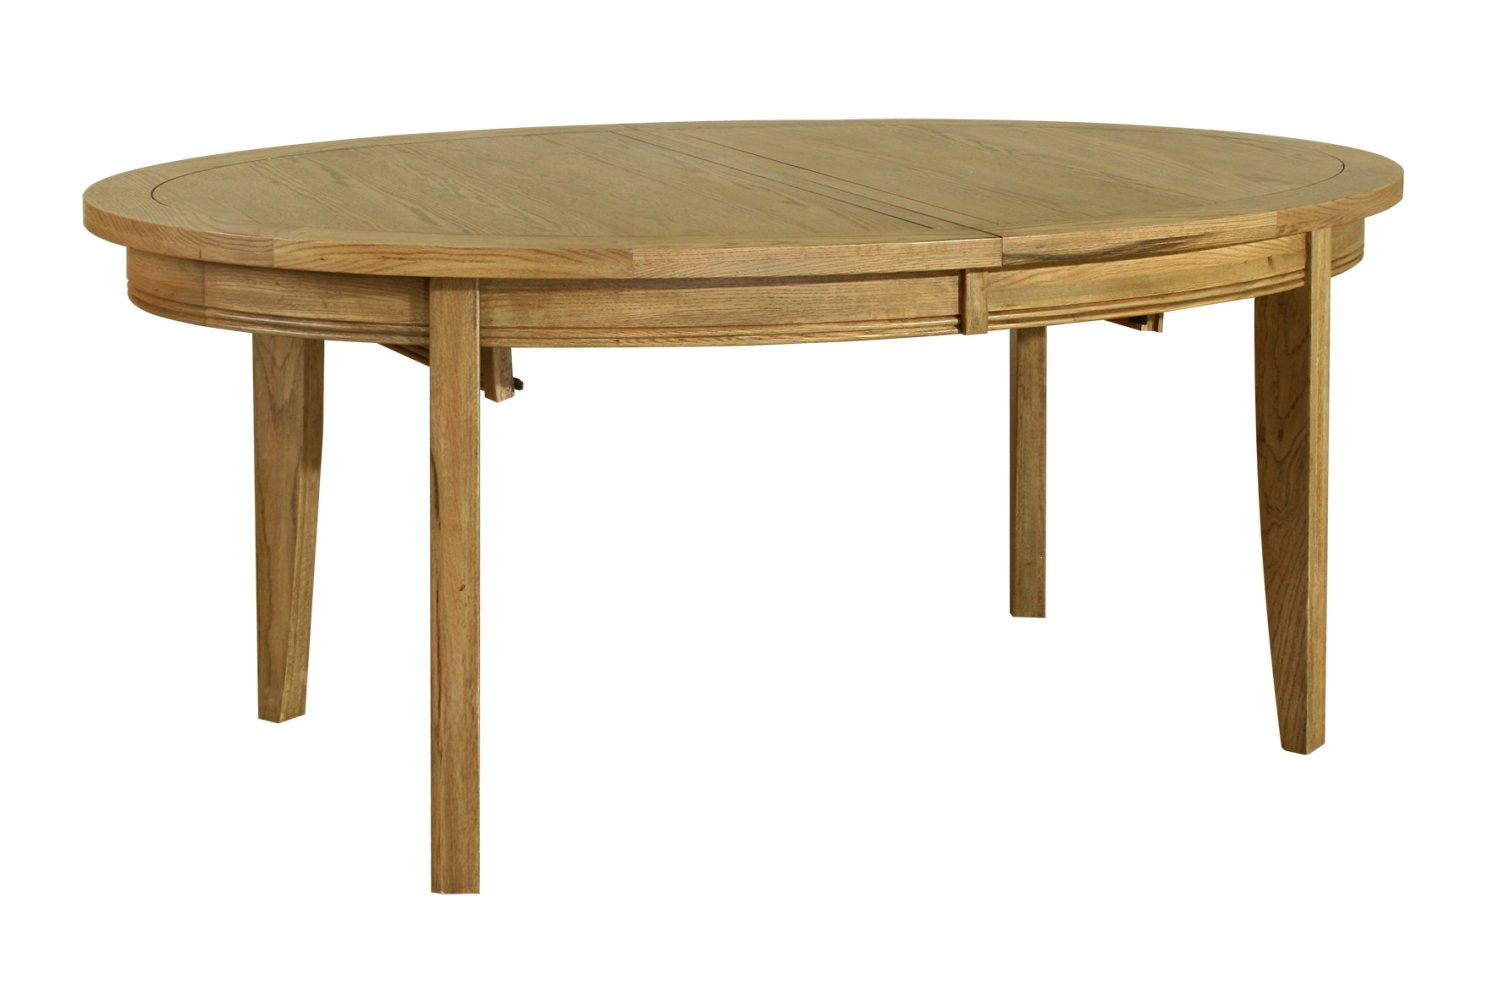 Linden Solid Oak Dining Room Furniture Oval Extending Dining Table Ebay